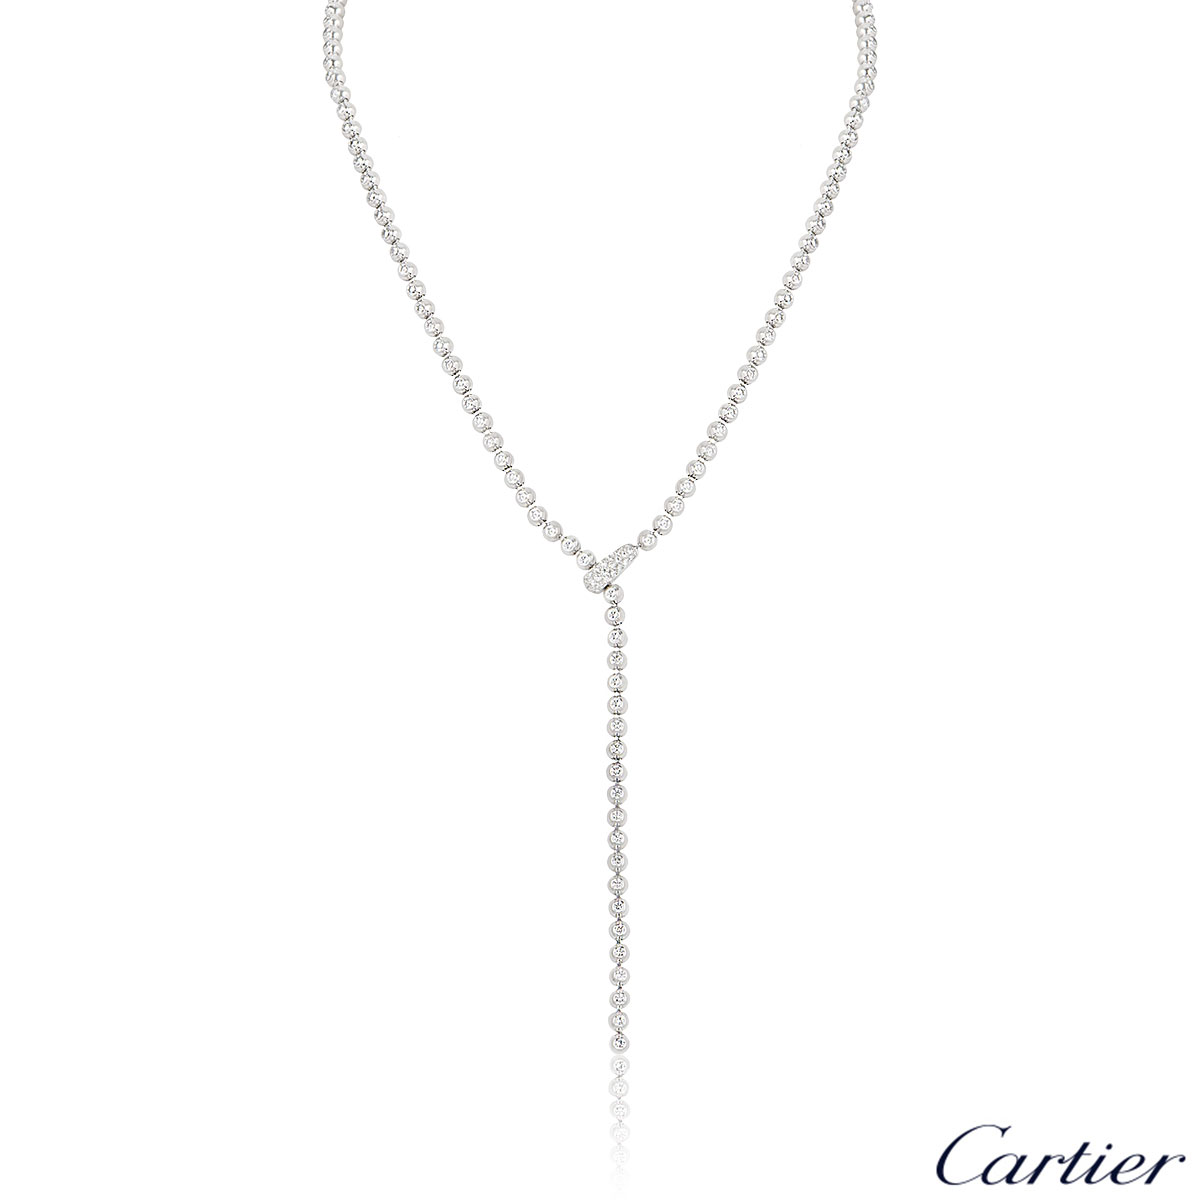 Cartier White Gold Diamond Necklace